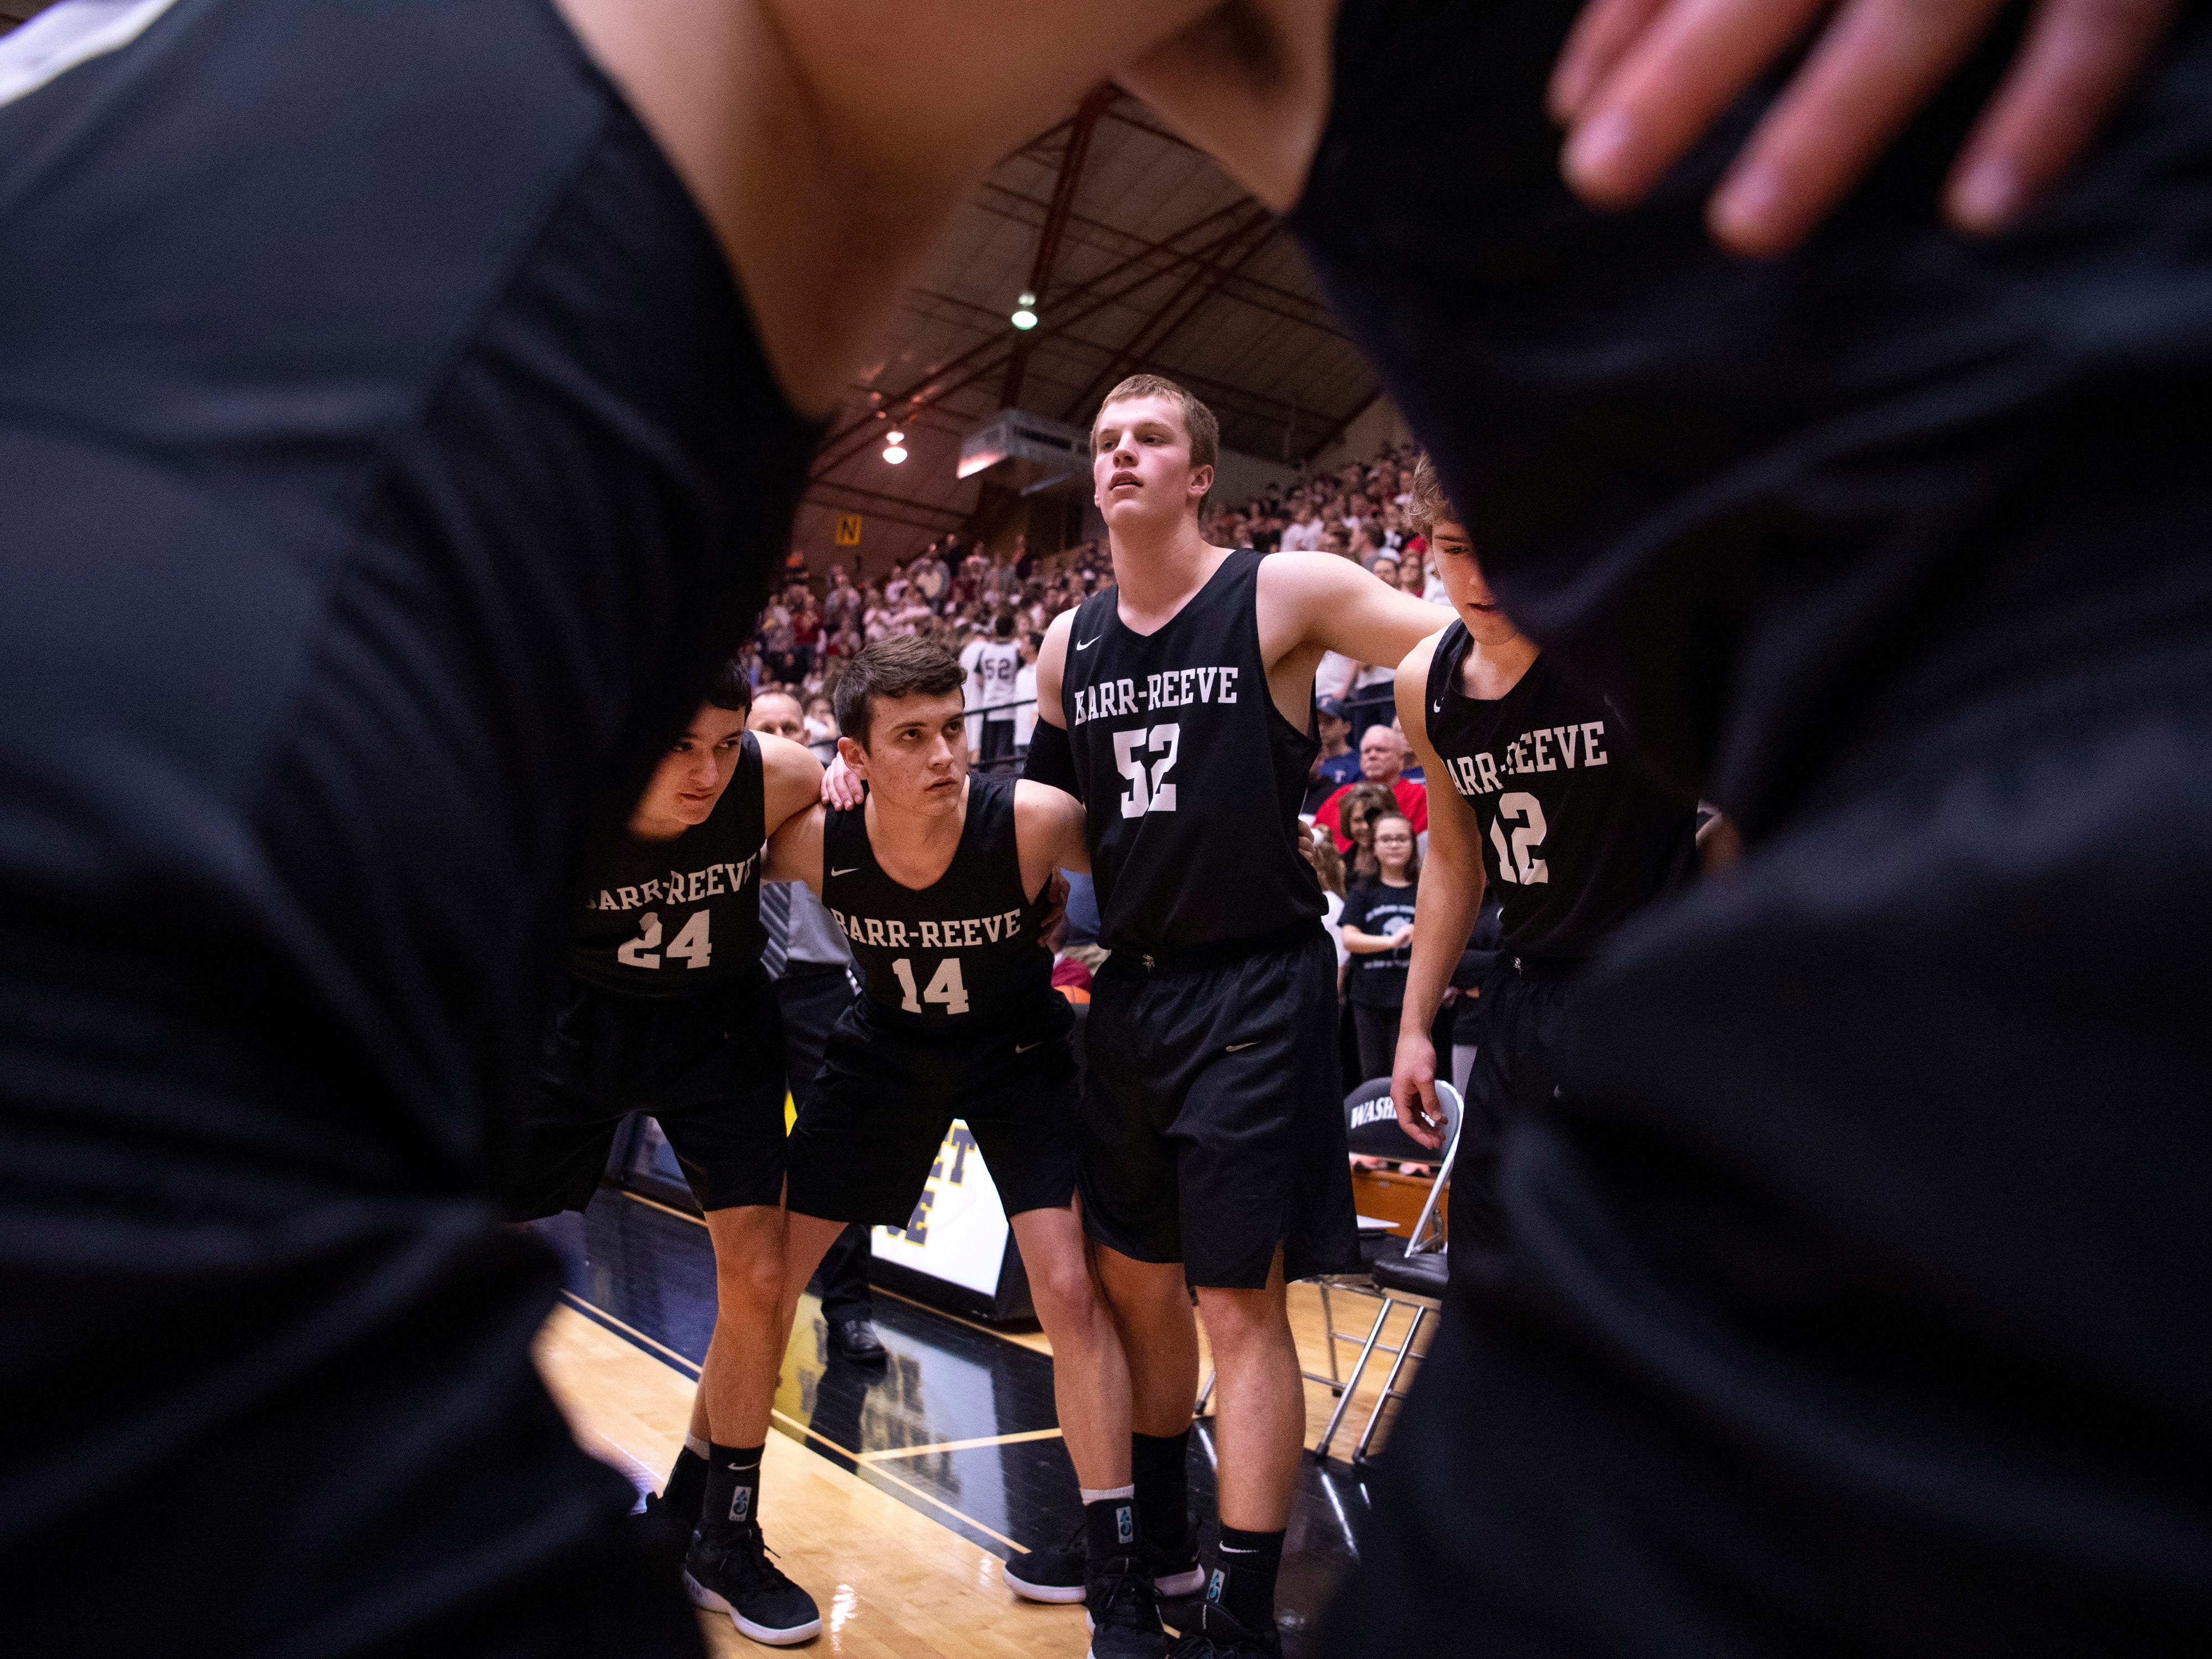 Barr-Reeve circles up before the start of their game against Bloomfield during the 1A Boys Indiana Semi-State Basketball Tournament at the Hatchet House in Washington, Ind., Saturday afternoon.